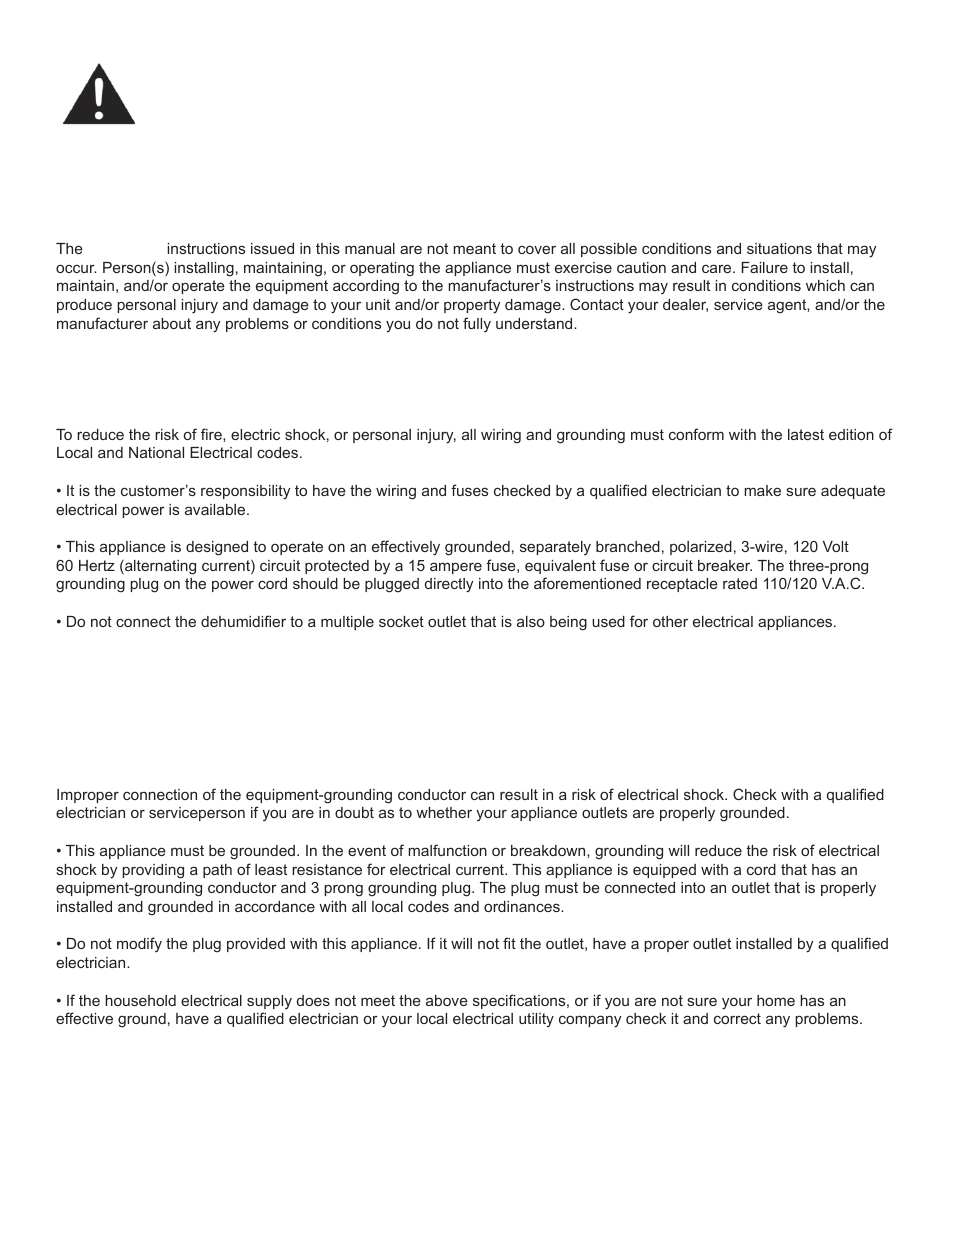 Troubleshooting | danby dcr044a2wdd user manual | page 7 / 21.